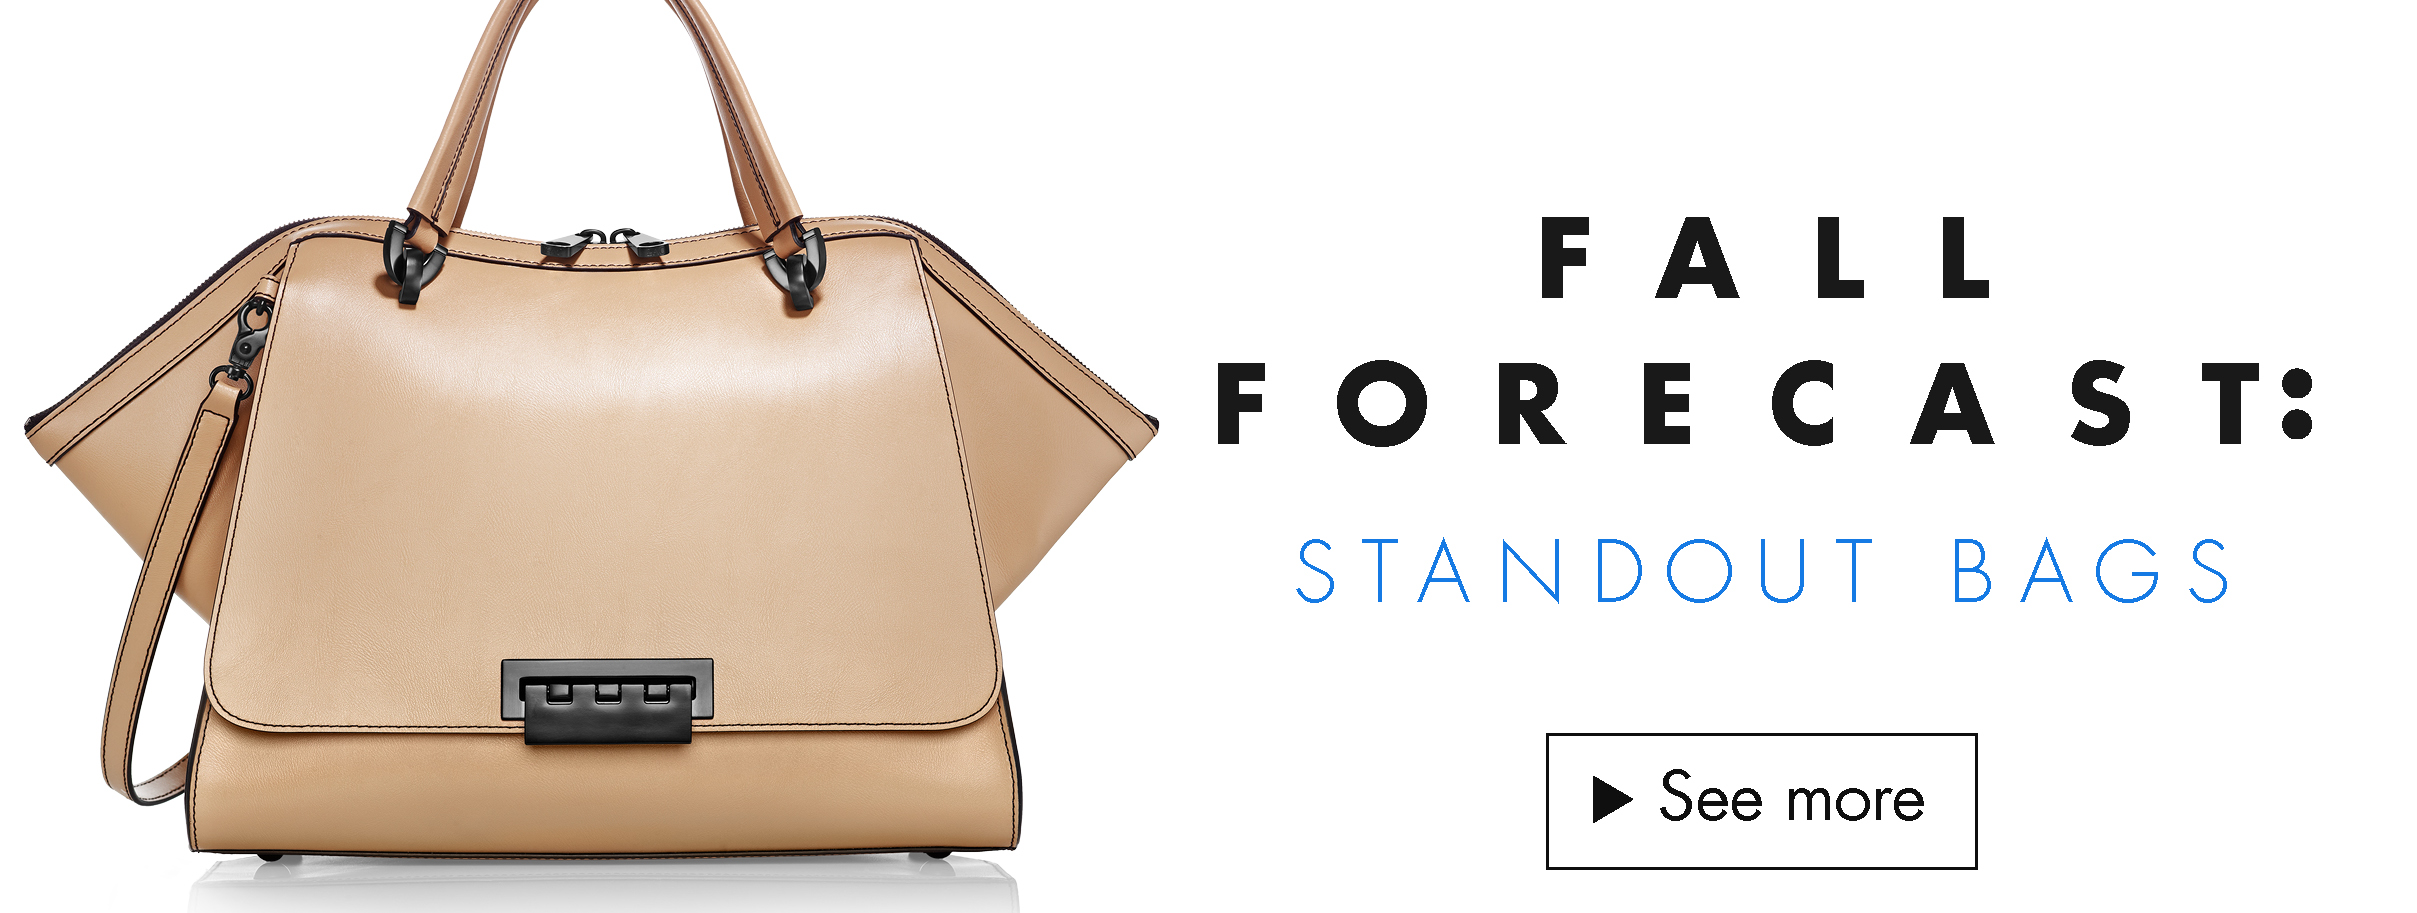 Fall Forecast: Standout Bags